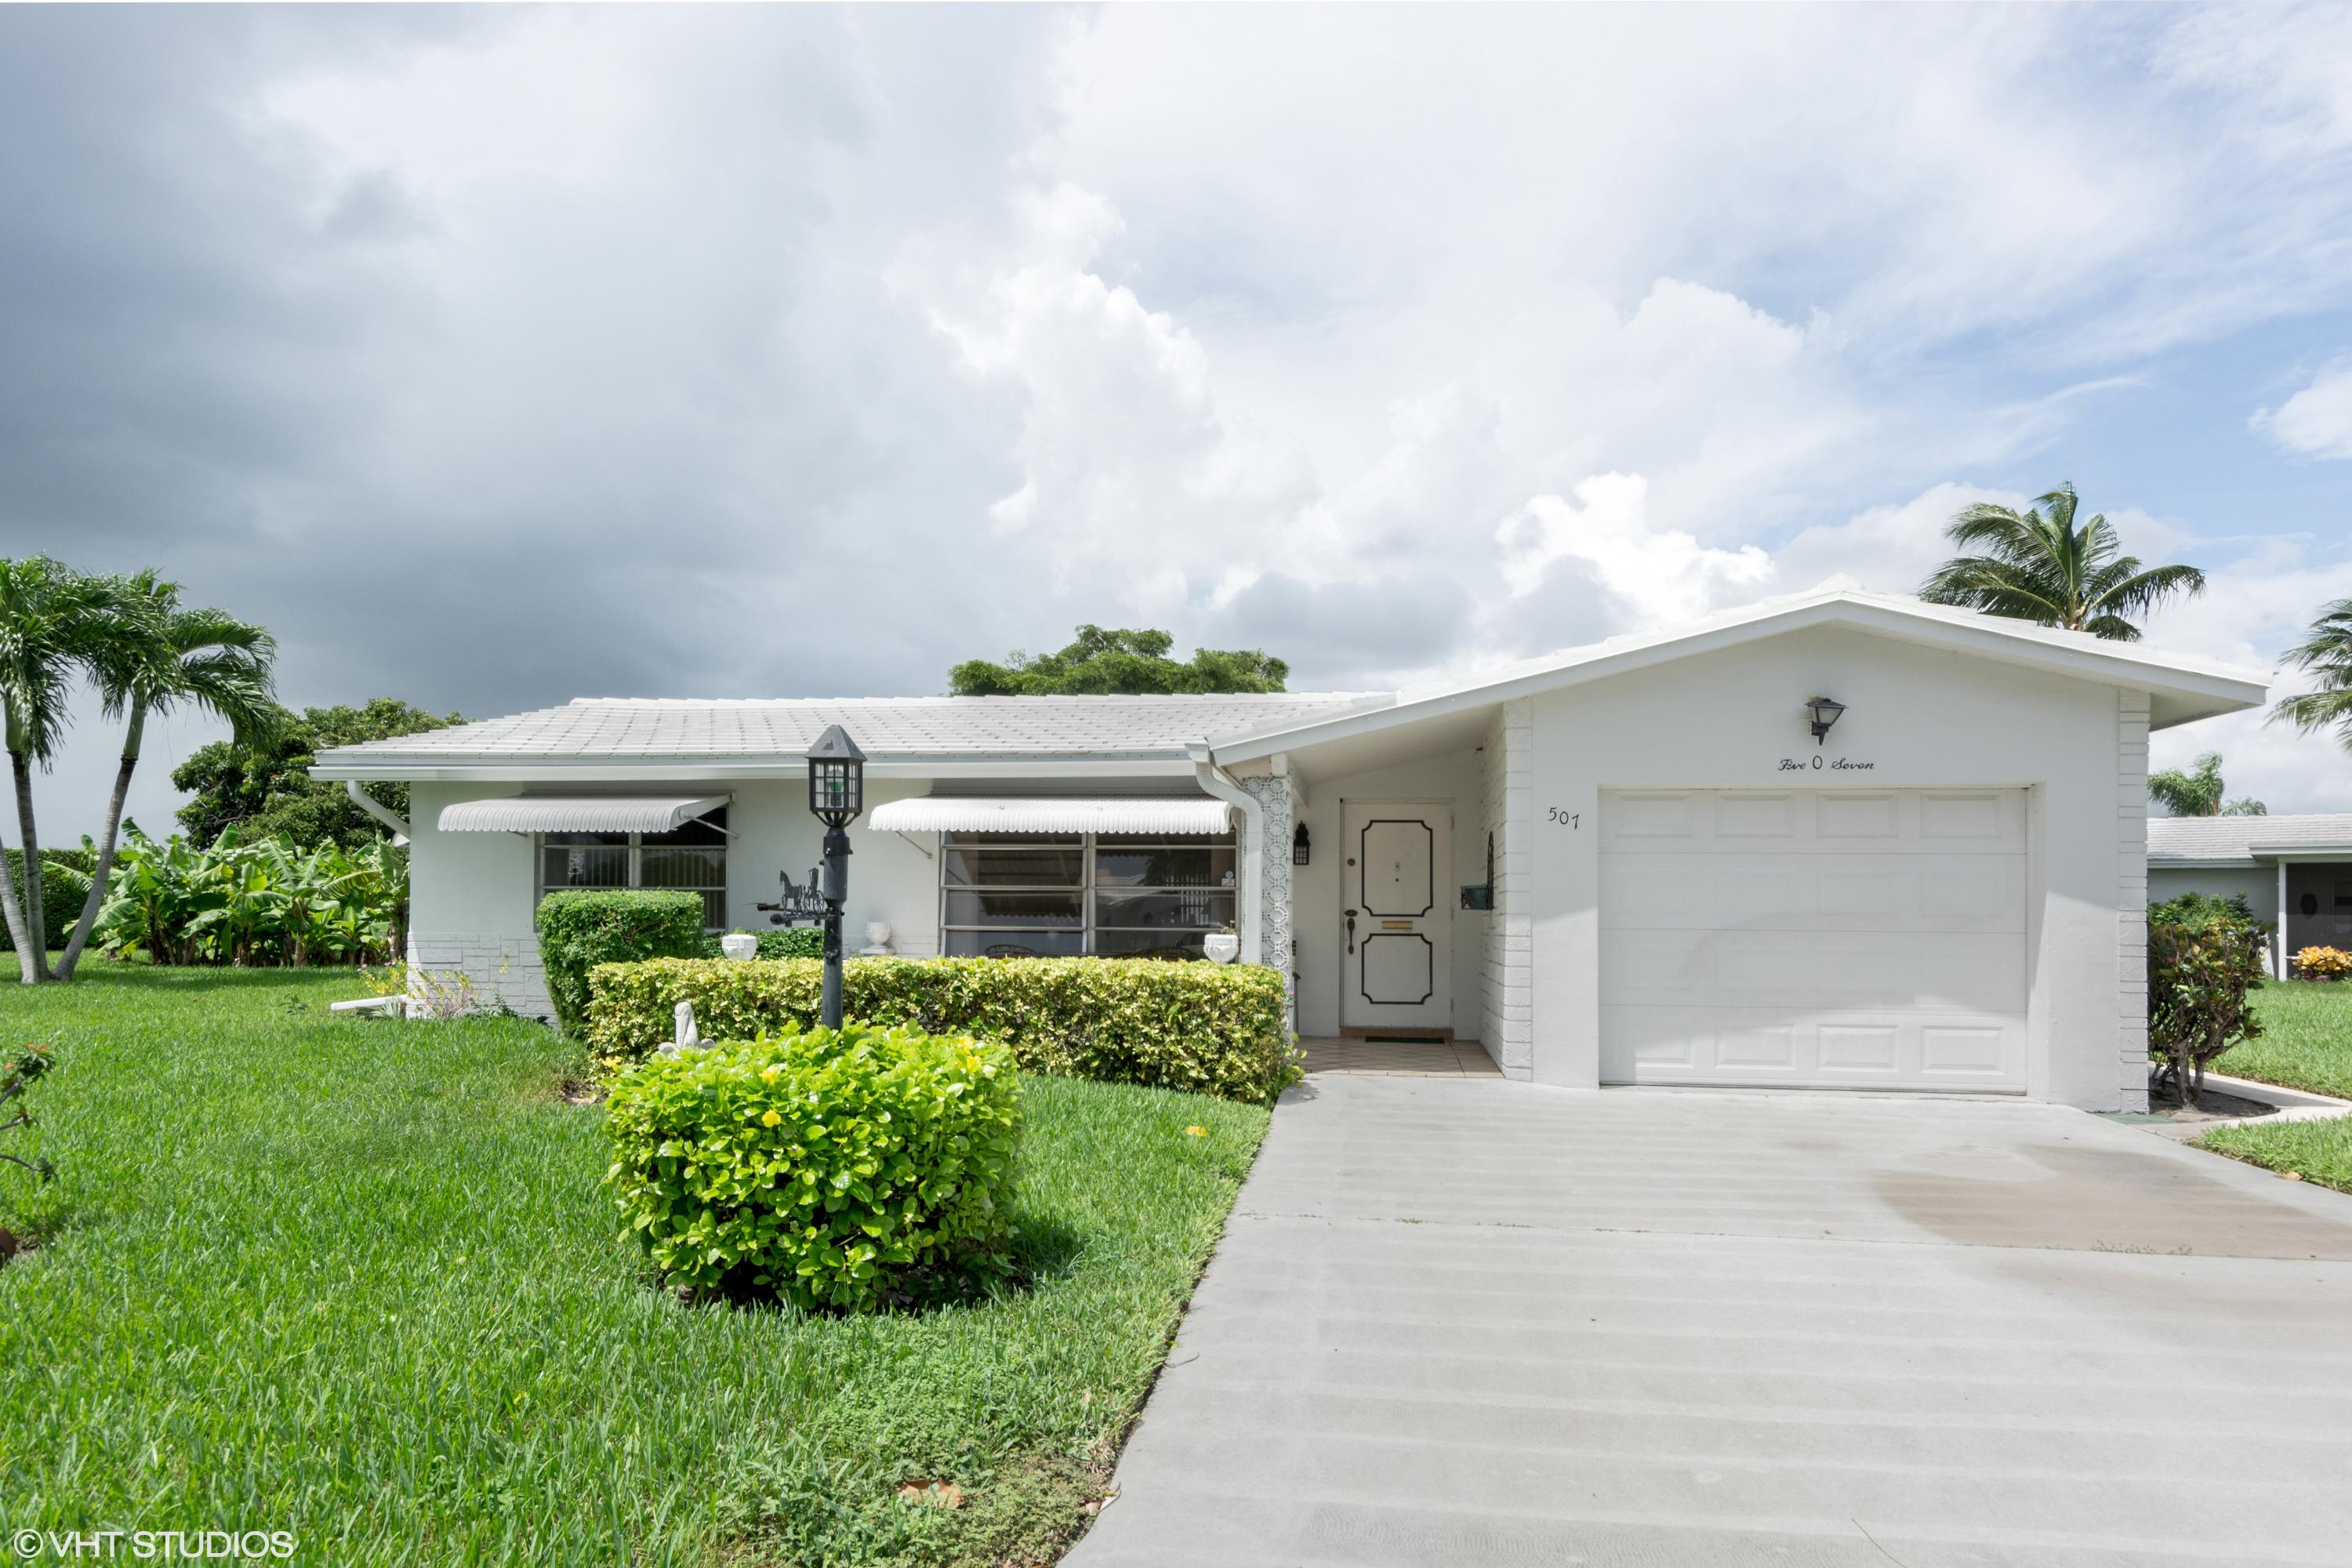 507 Canal Way Boynton Beach, FL 33426 small photo 2